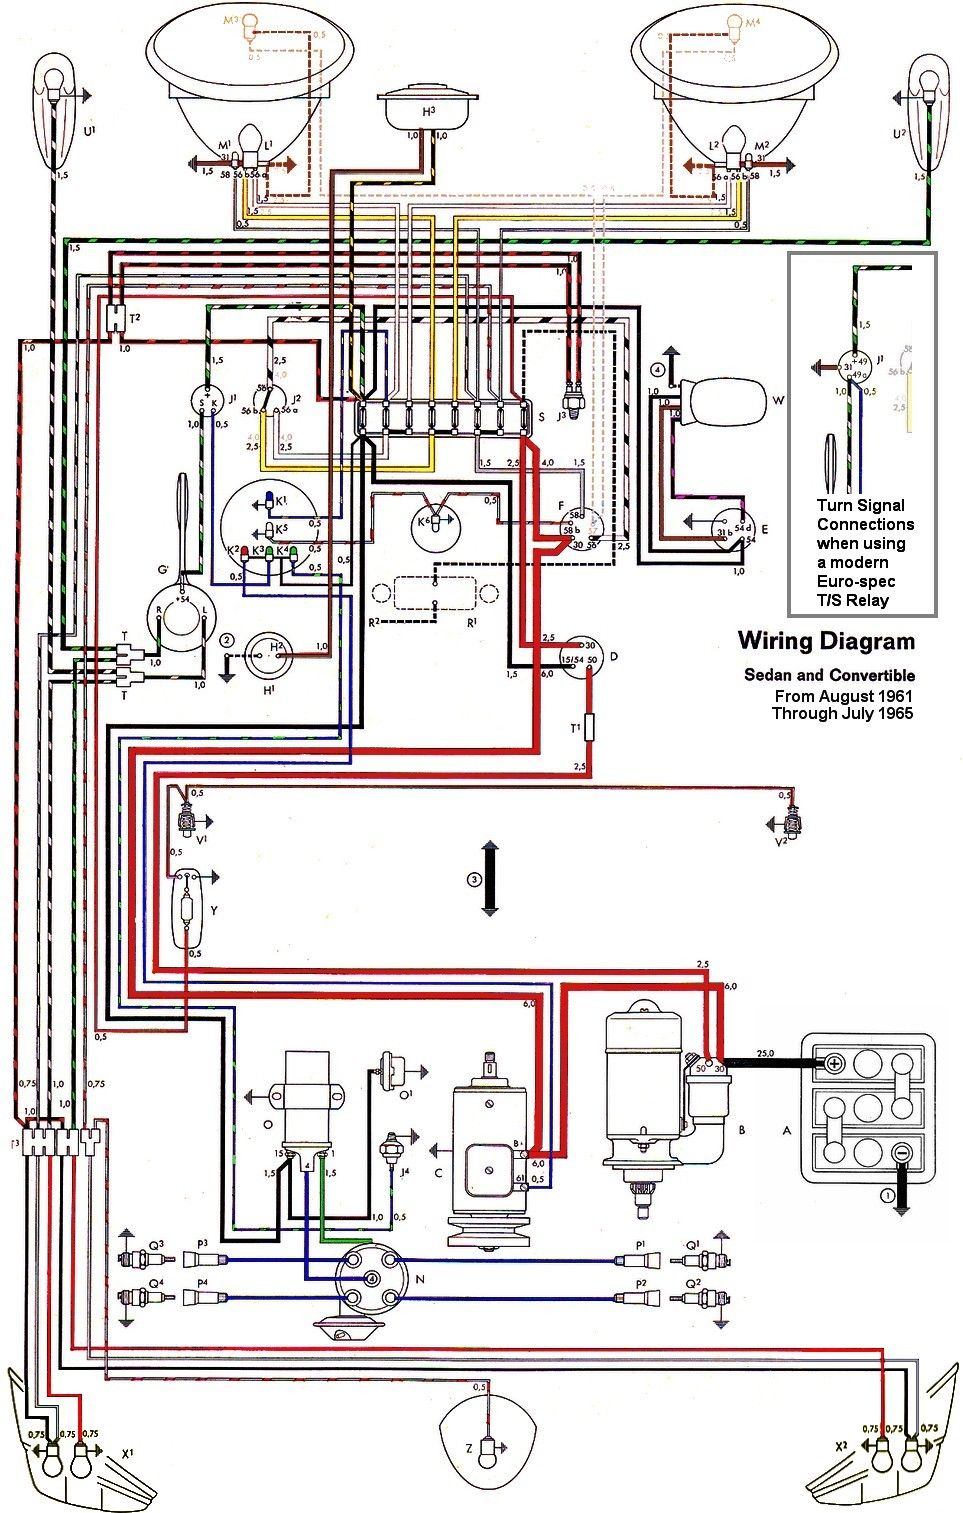 Wiring Diagram For 1971 Mustang Convertible Mastering 1959 Edsel Power Window 1965 Volkswagen Detailed Schematics Rh Lelandlutheran Com Ford Bronco Harness Diagrams